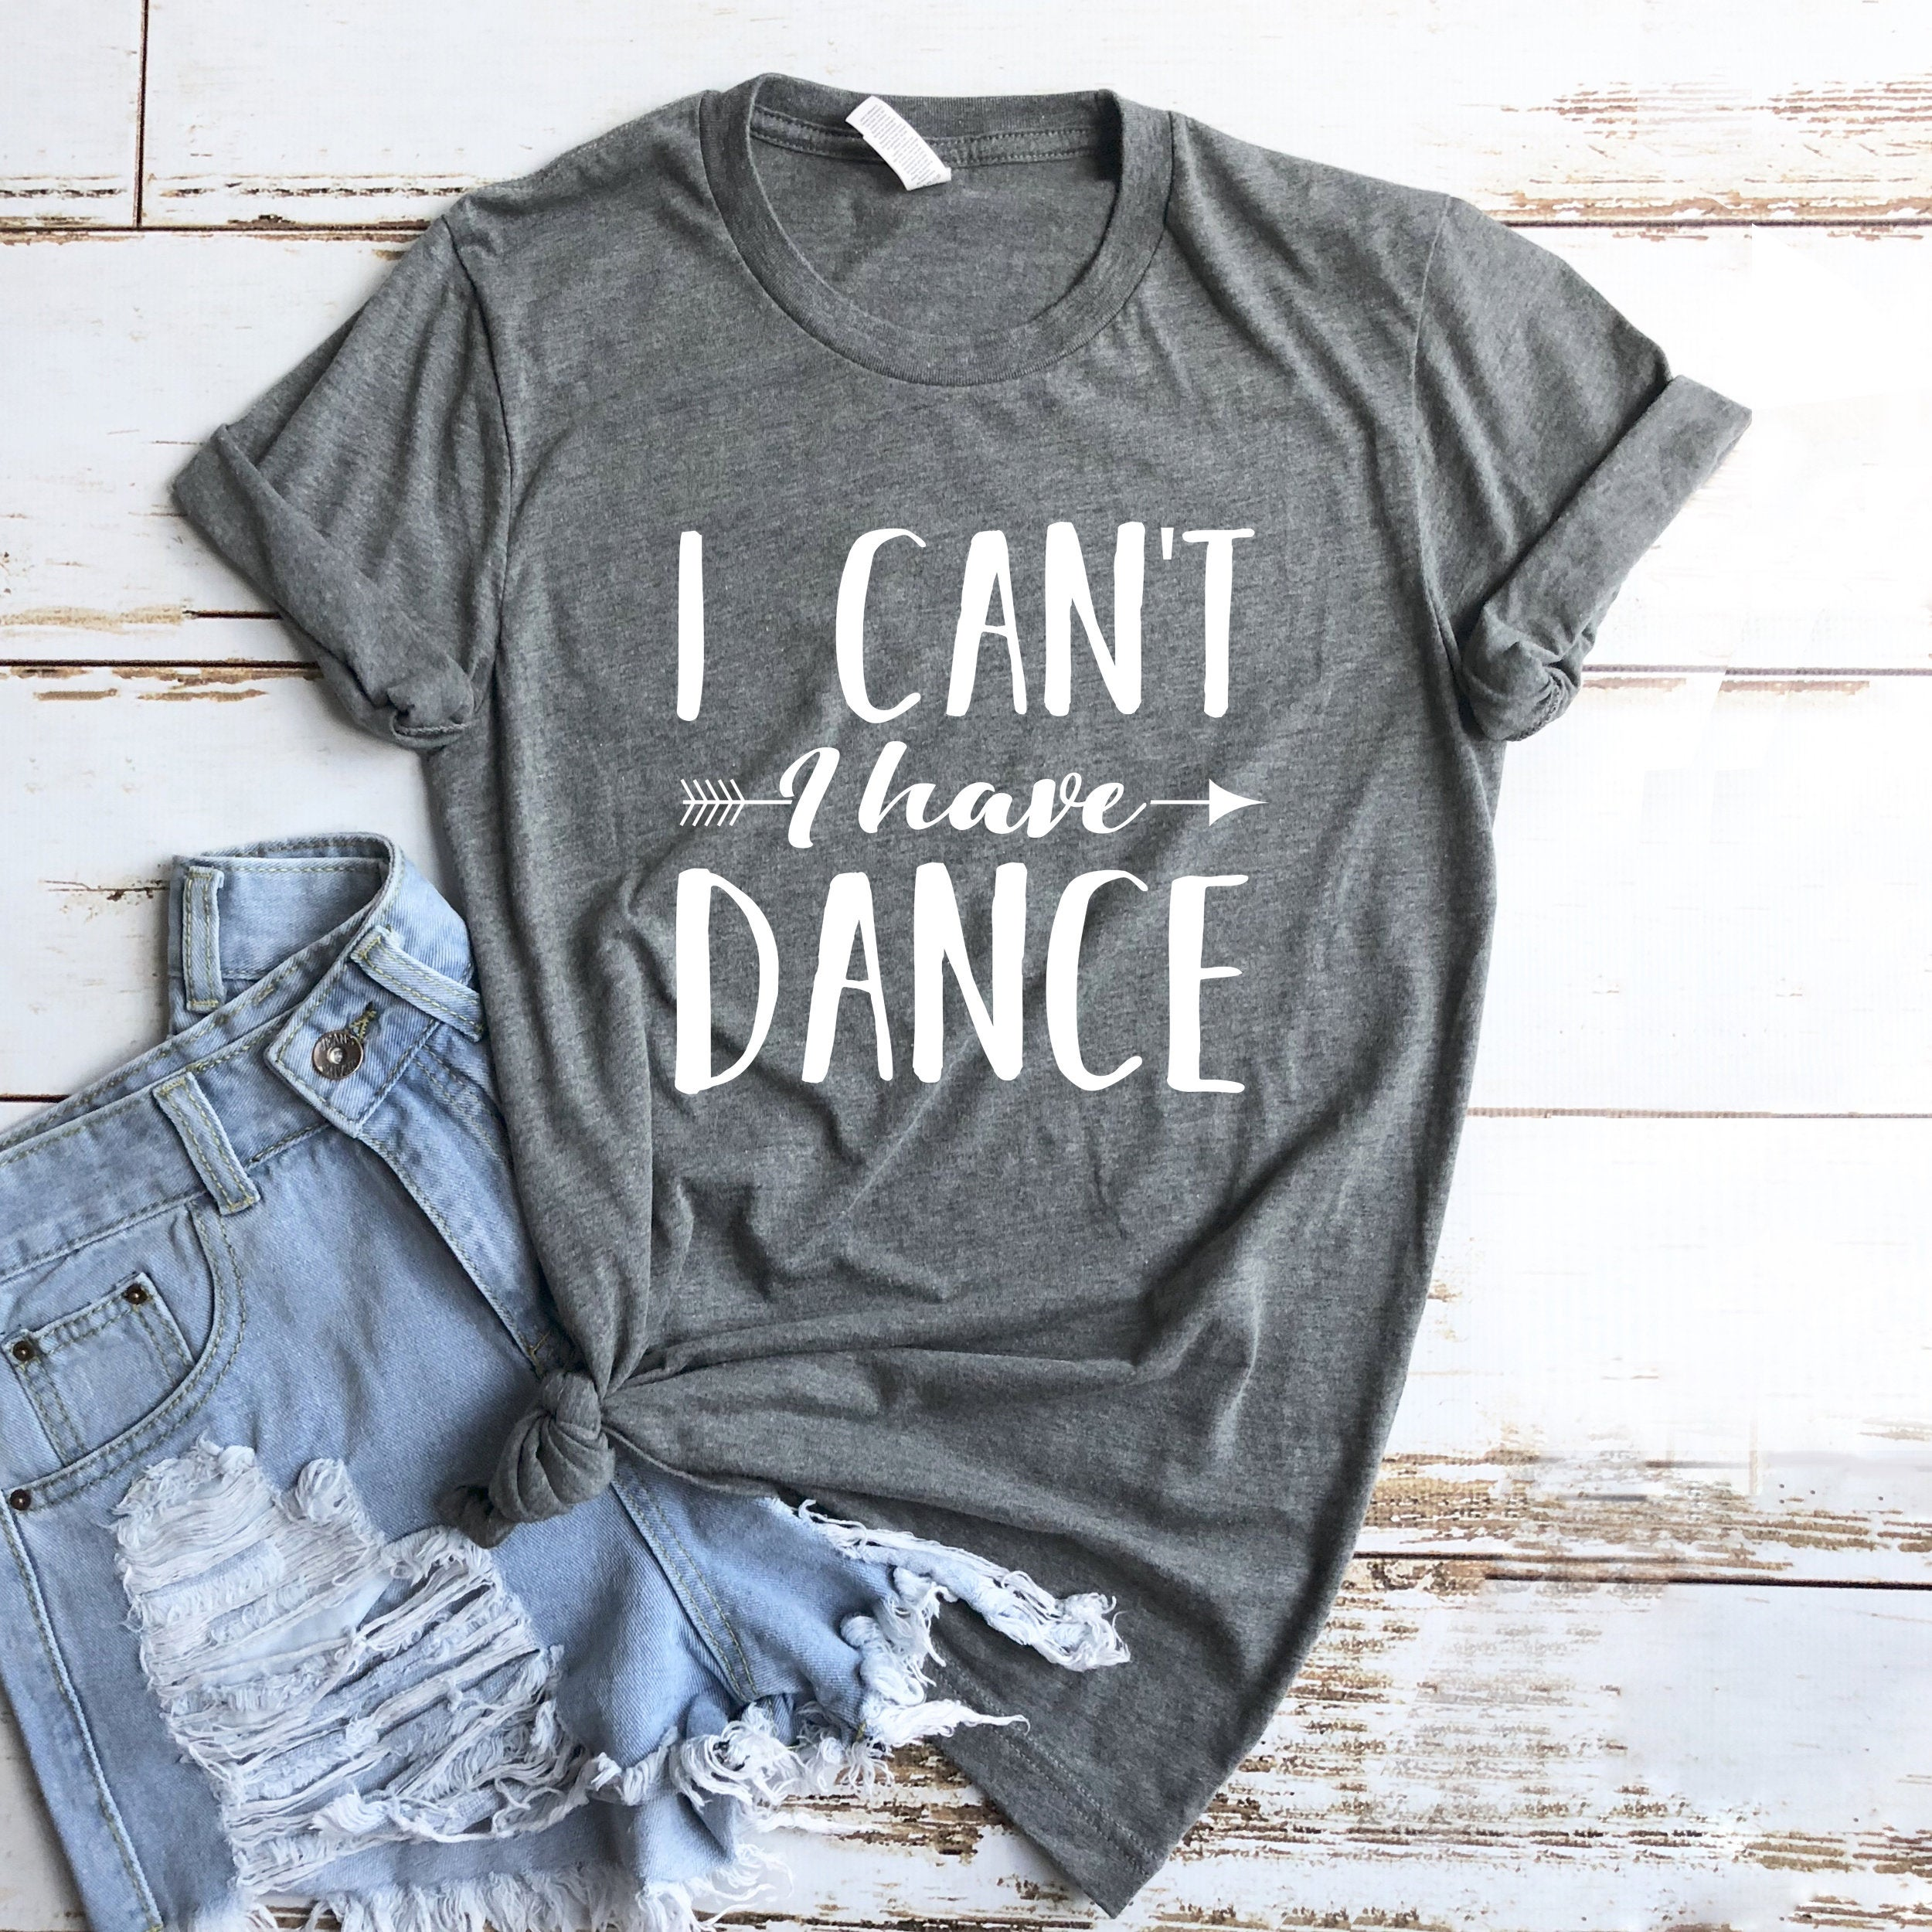 I Can't I Have Dance Women Tshirt Cotton Casual Funny T Shirt Lady Yong Girl Top Tee 5 Colors Drop Ship S-637